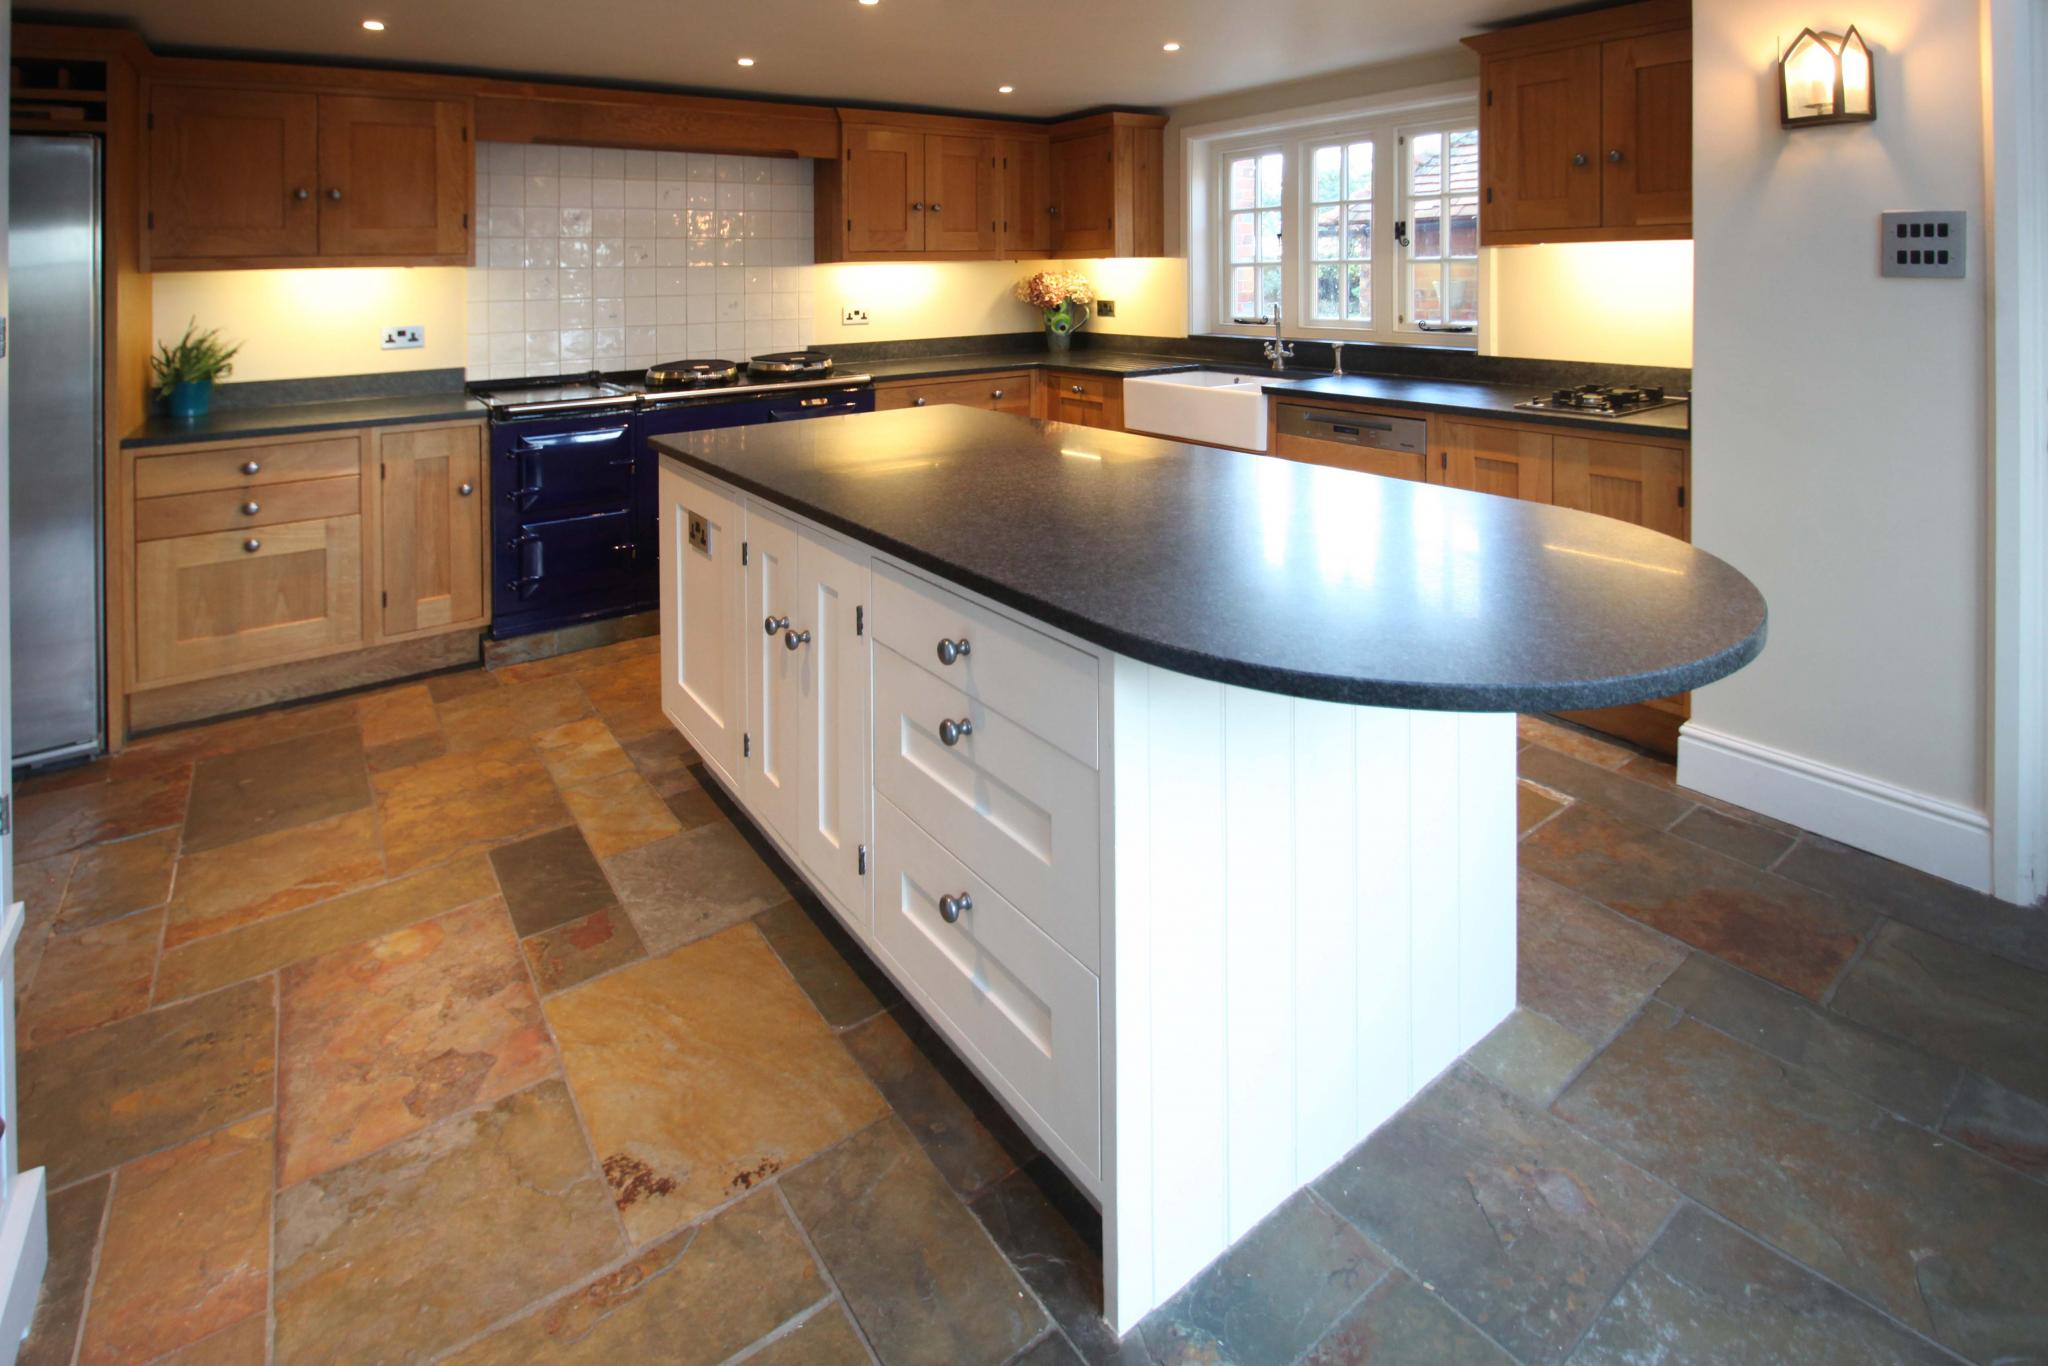 Used kitchen furniture Near Me Andrew Lord Furniture Bespoke In Frame Used Kitchen Jayvadocom Andrew Lord Furniture Bespoke In Frame Used Kitchen With Island